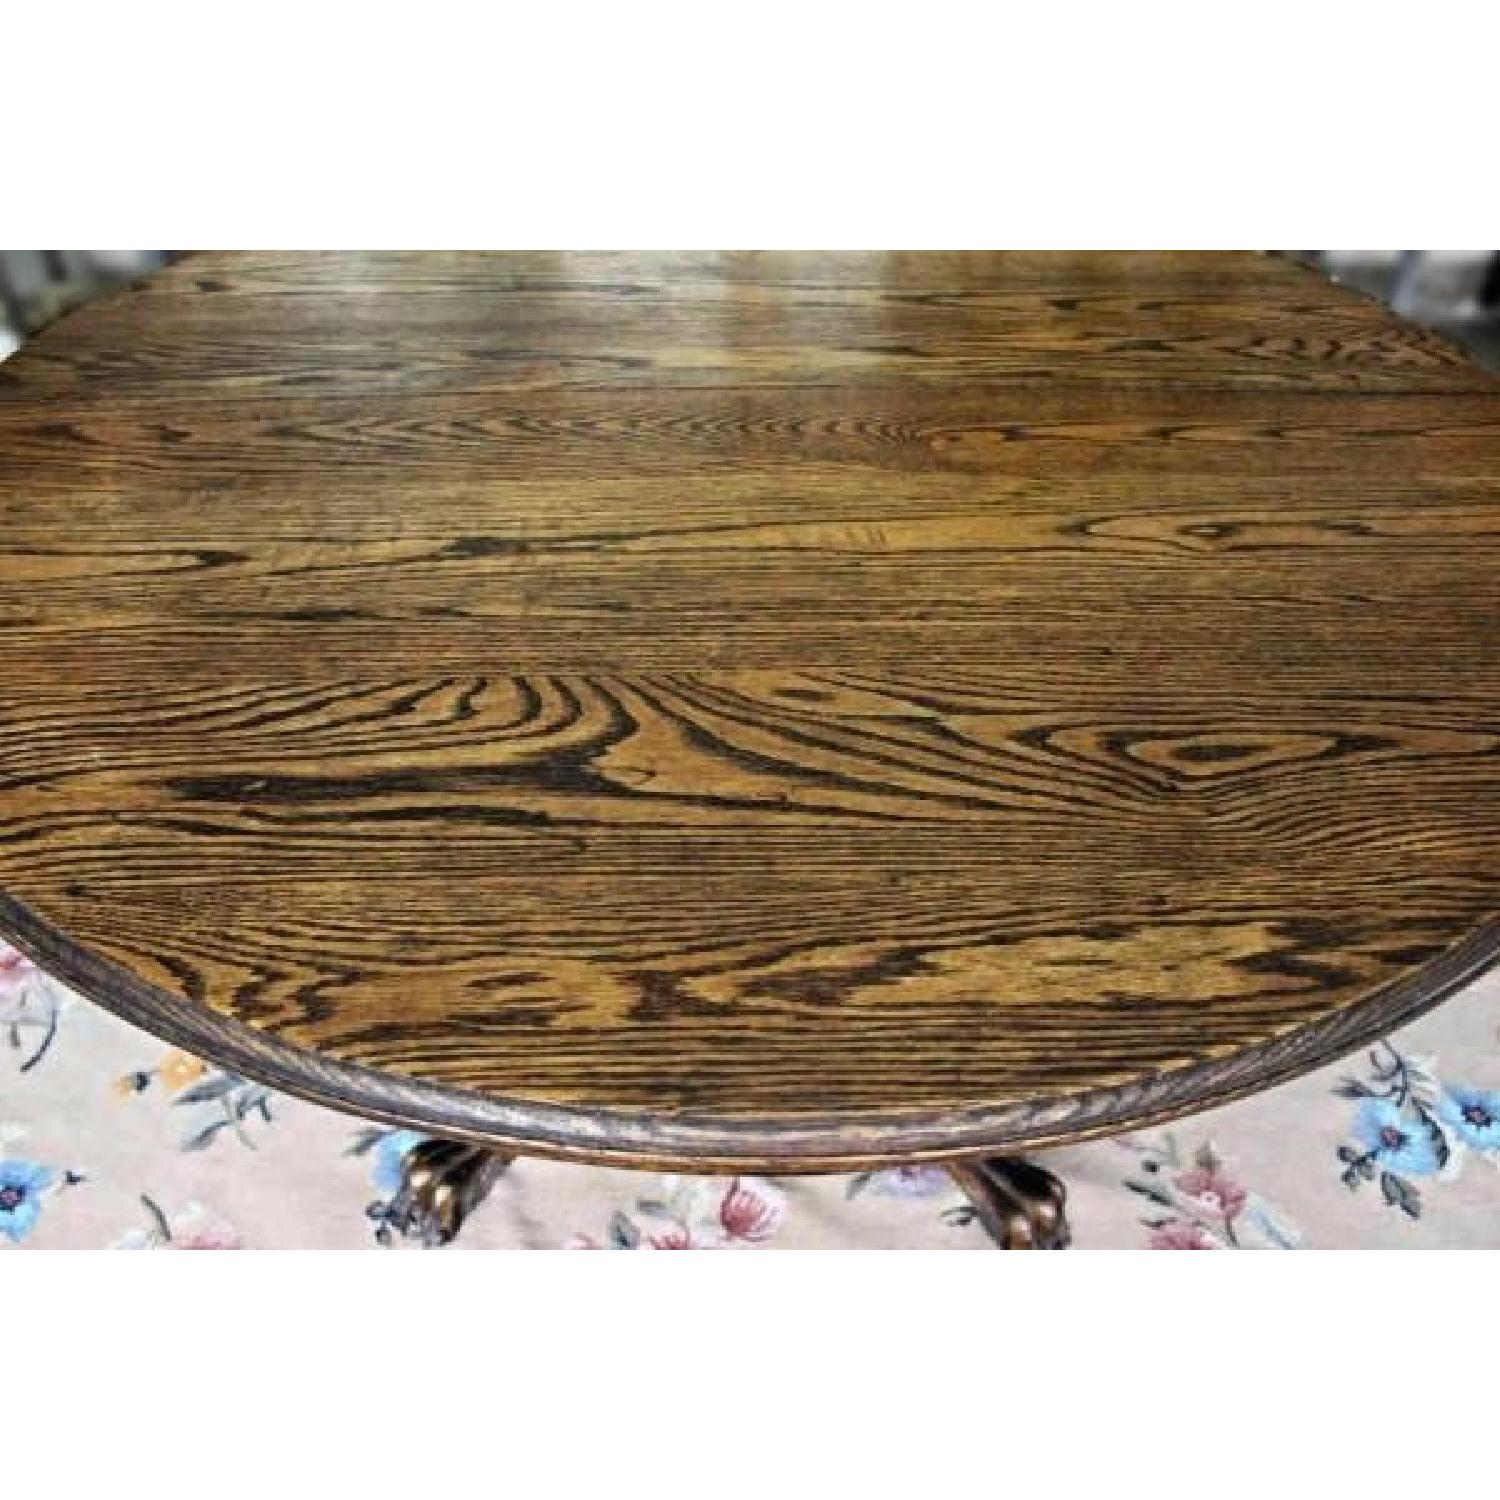 Antique Early American Oak Claw Foot Round Dining Table